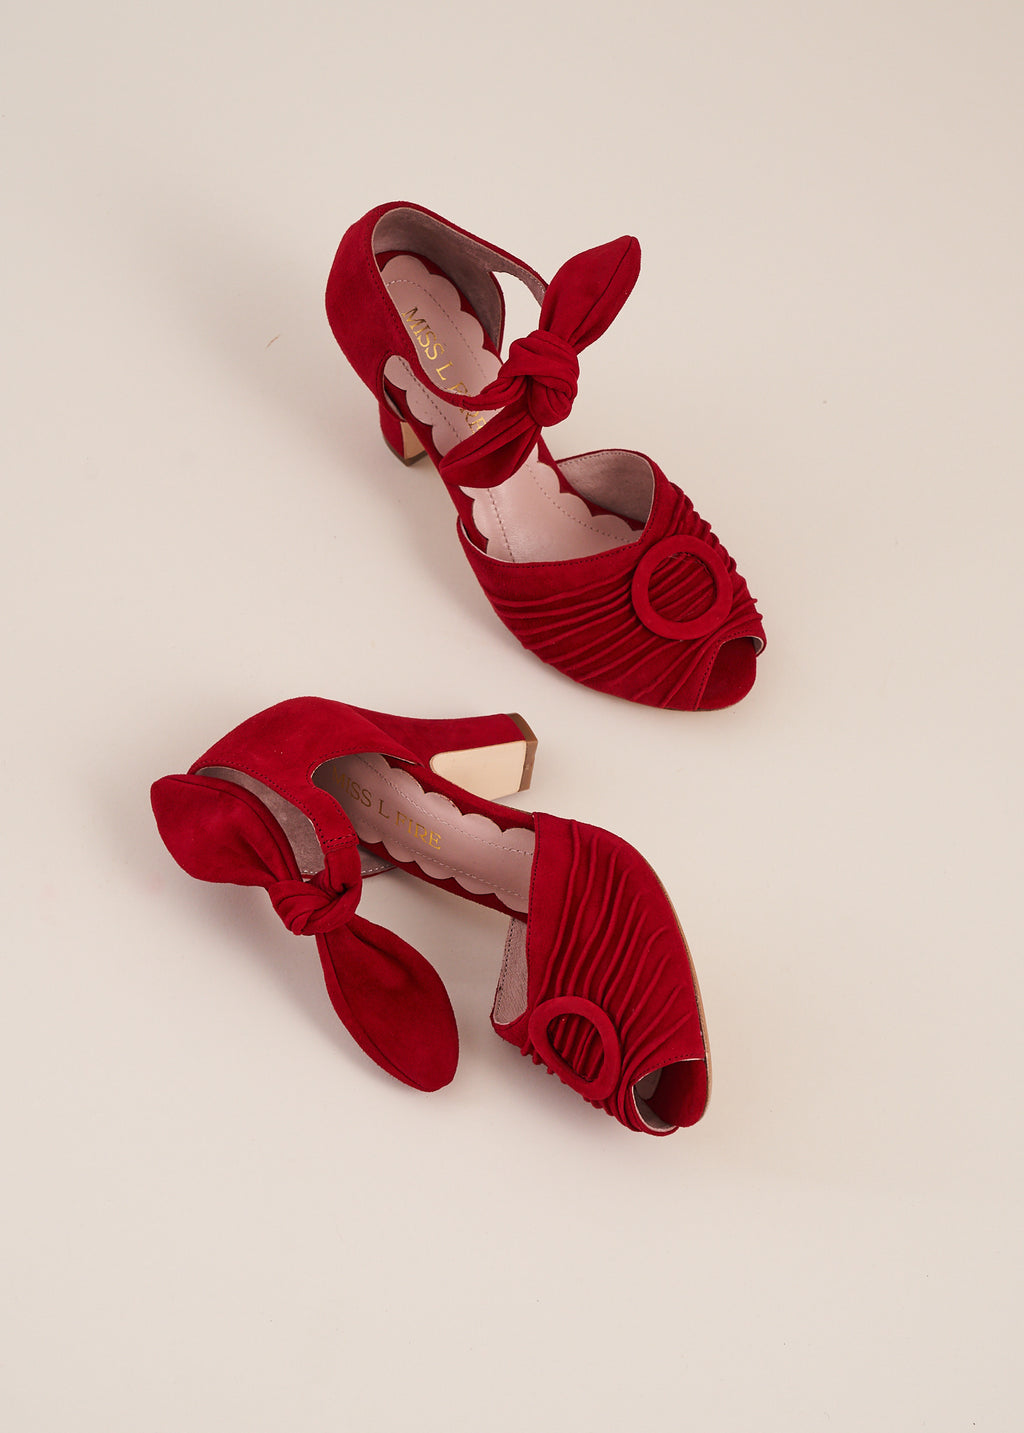 Loretta ruby red peep toe suede sandal with ruched detail and tie straps. Vintage inspired, always ethically produced.